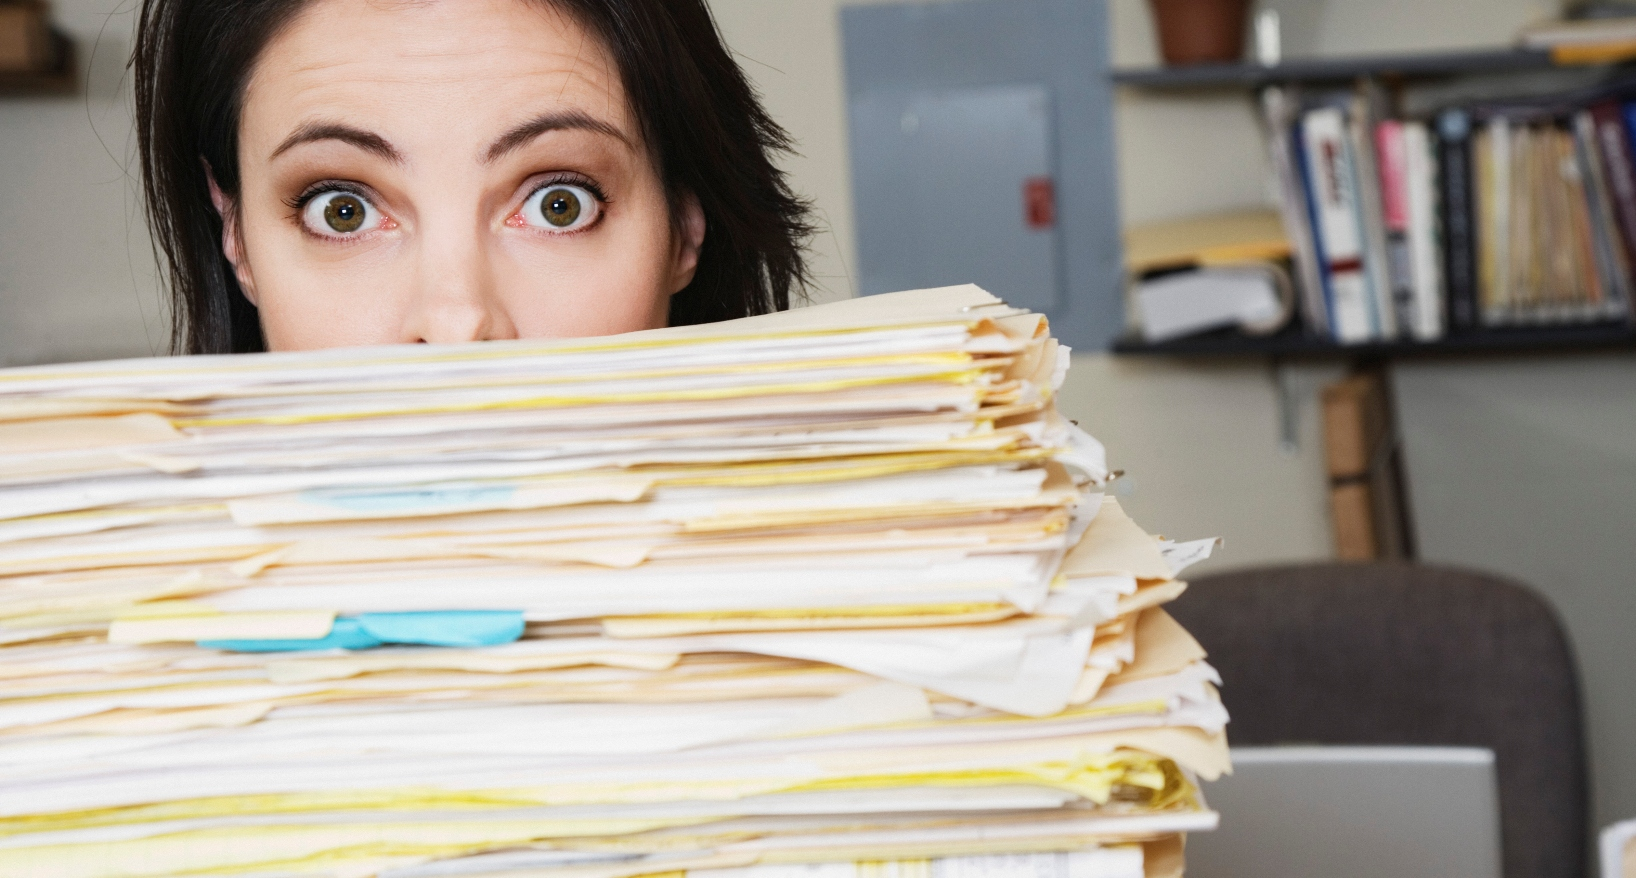 Surprised woman behind stack of files